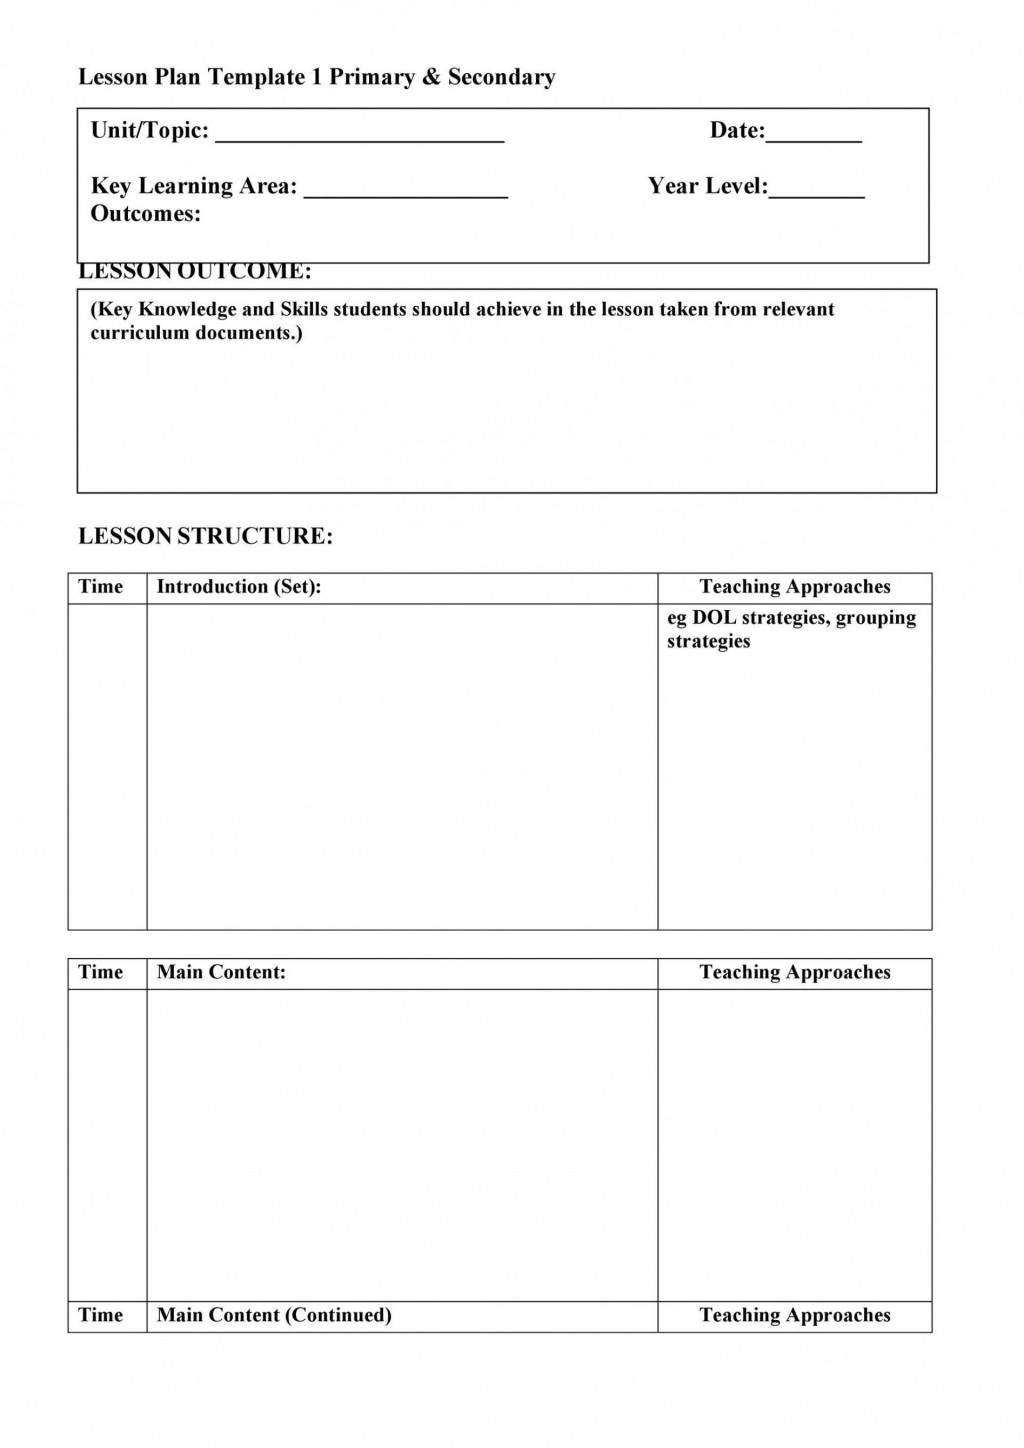 004 Beautiful Siop Lesson Plan Template 1 Example Picture Large